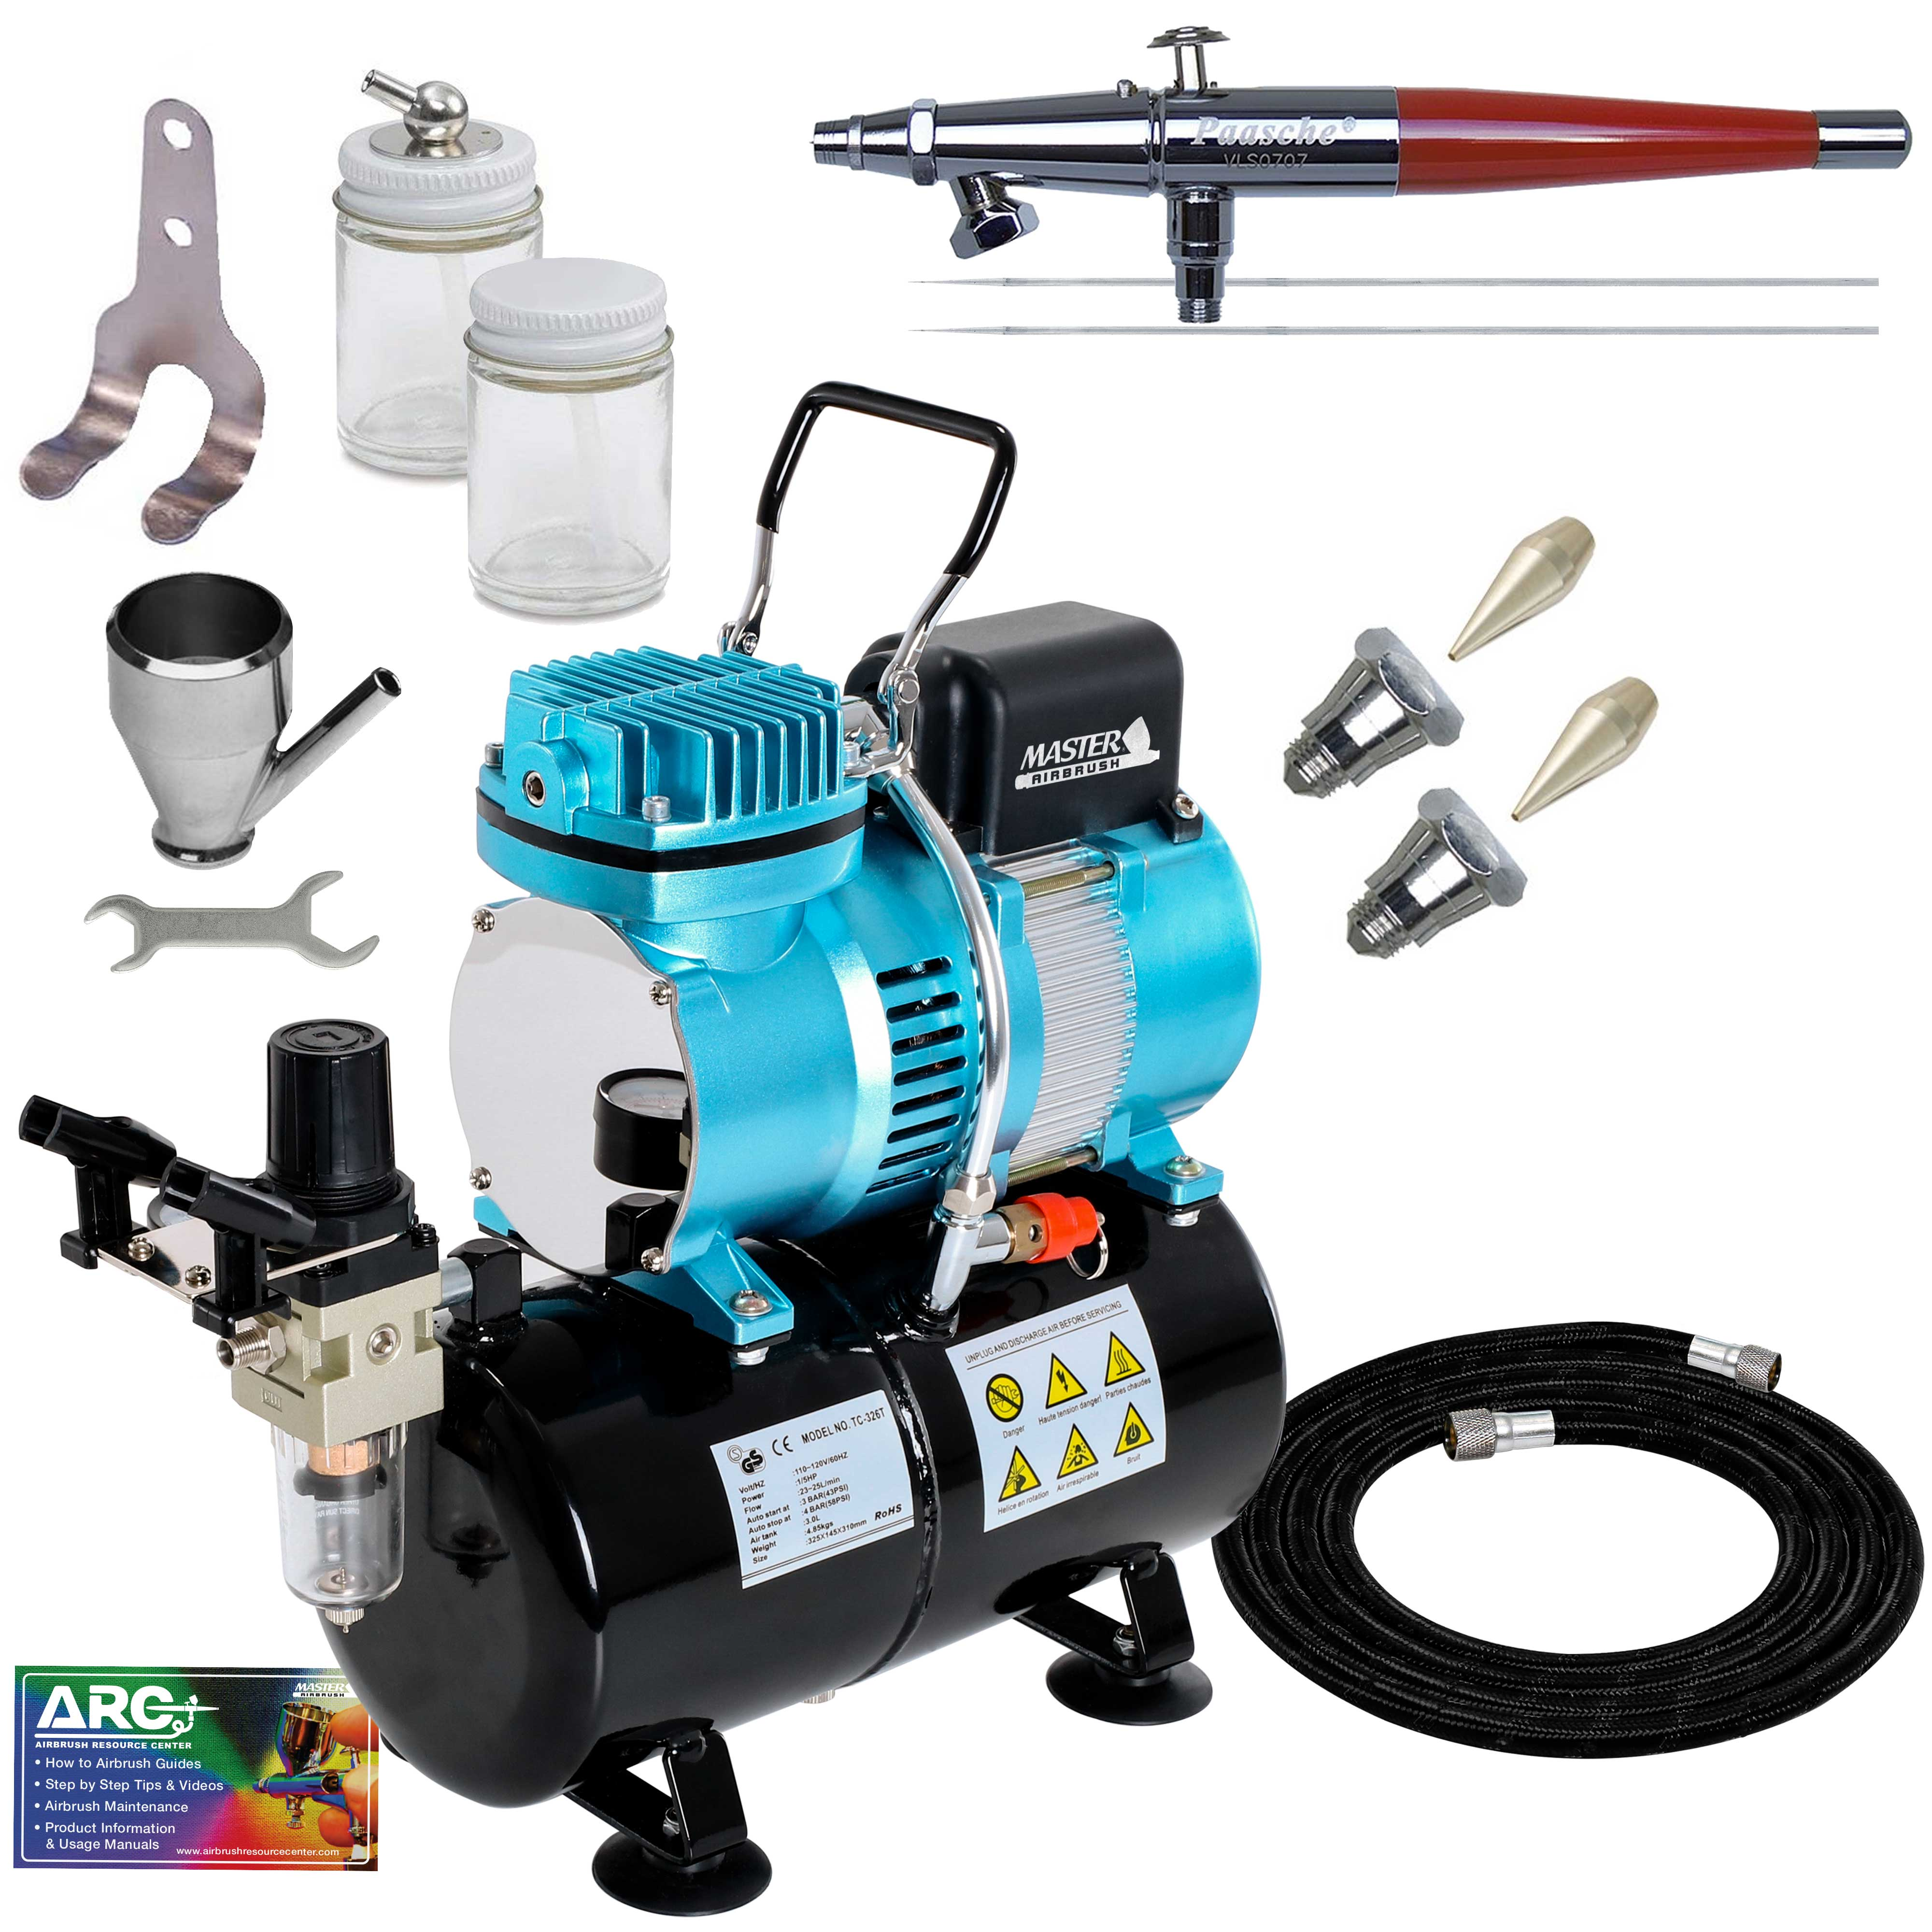 Paasche VL SET Airbrush System Compressor Dual-Action T-Shirt Hobby Cake Tattoo